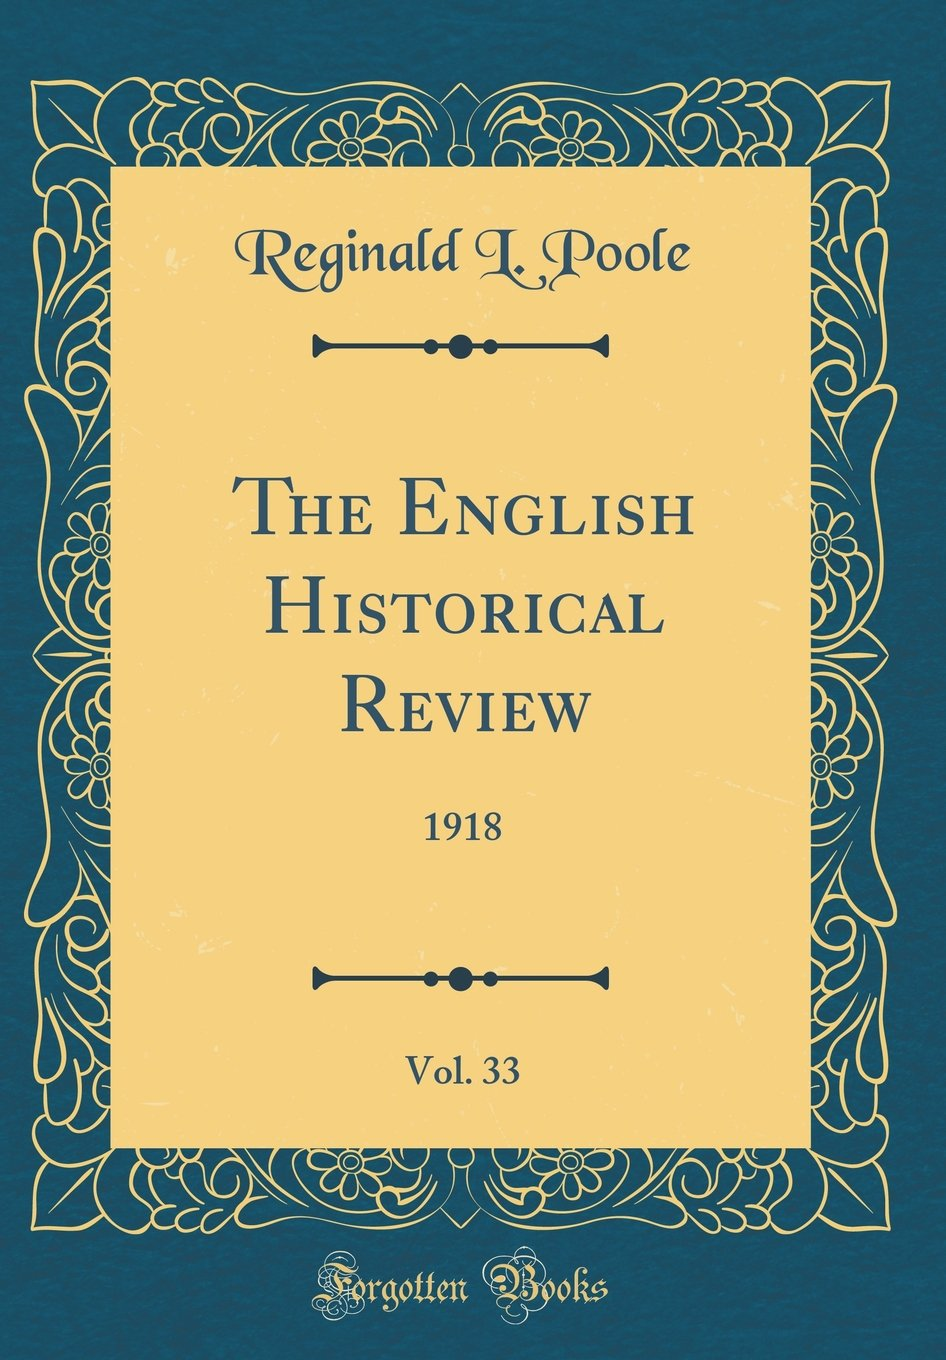 Read Online The English Historical Review, Vol. 33: 1918 (Classic Reprint) PDF